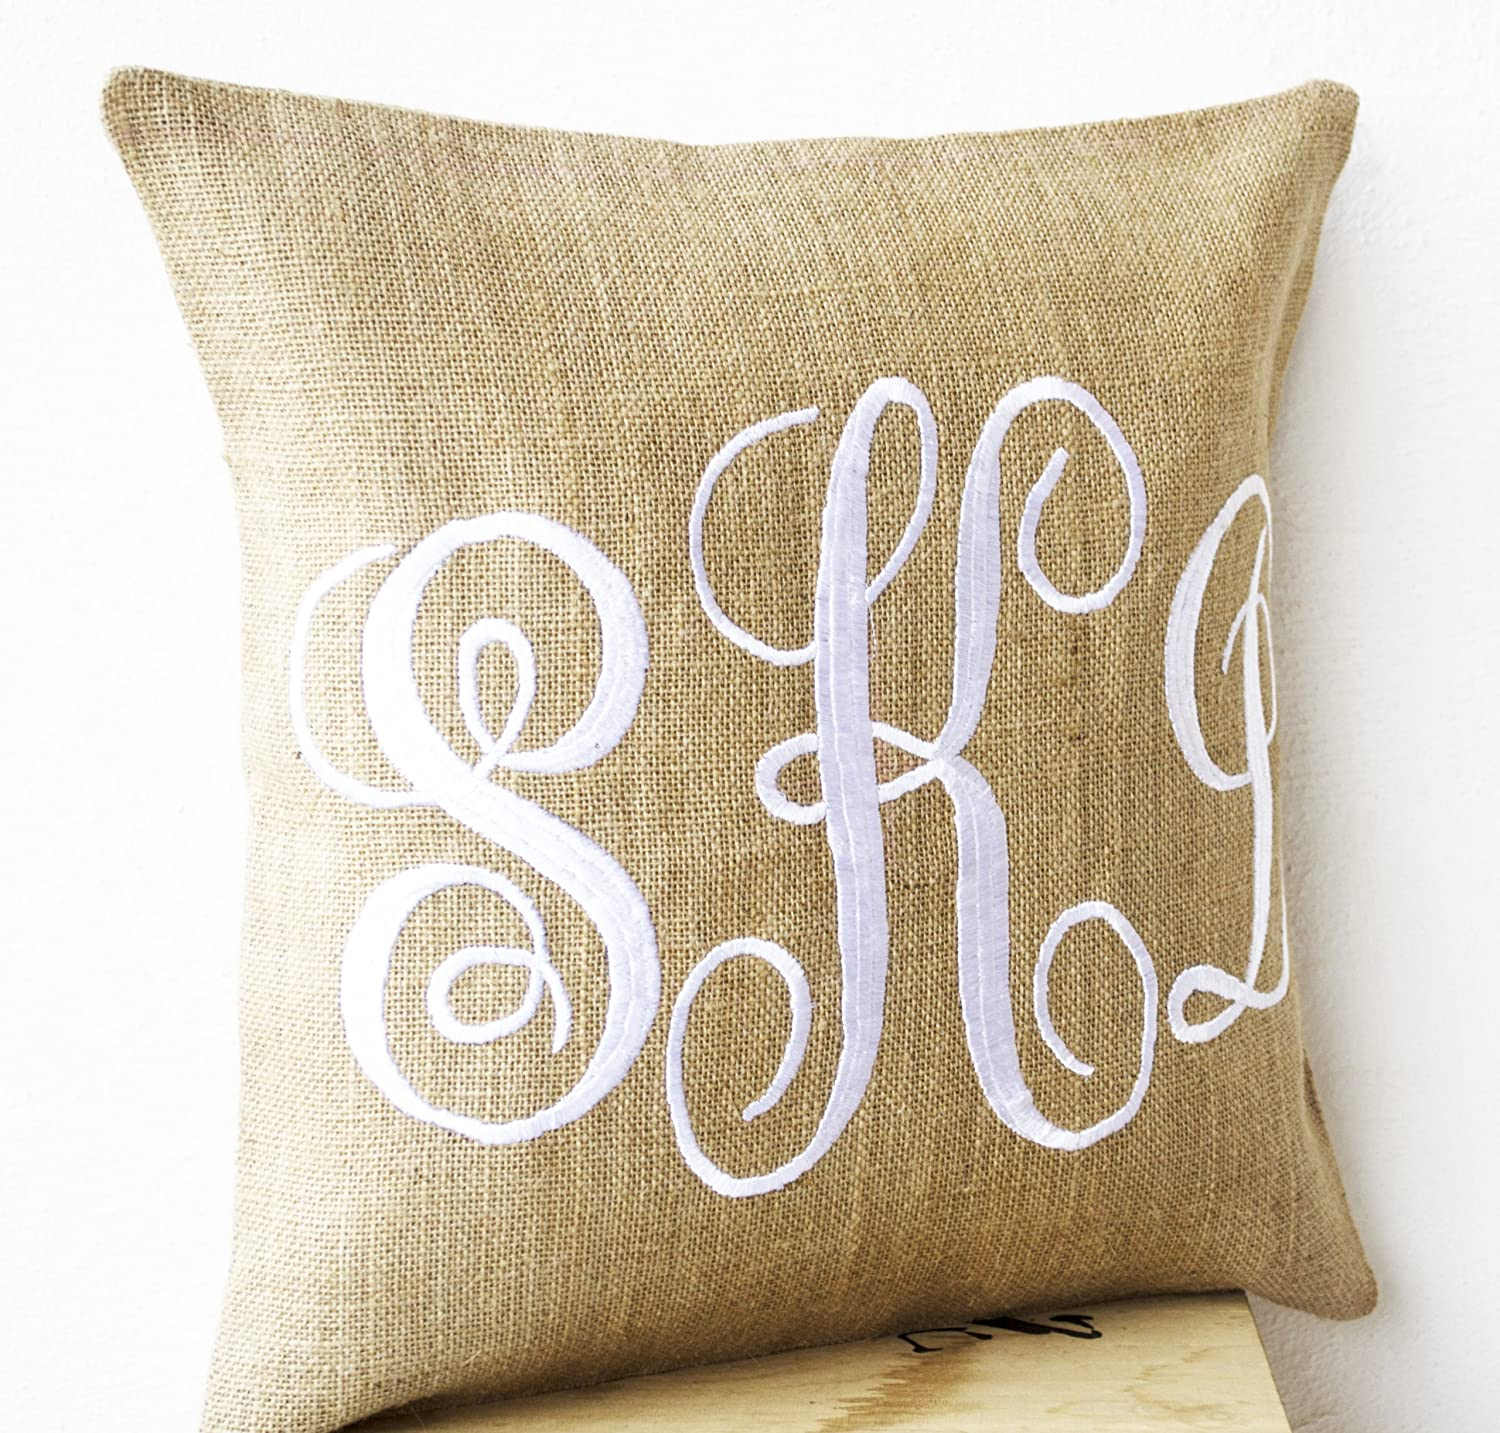 pillows the table preppy category classic monograms product prep monogram monogrammed shop pillow